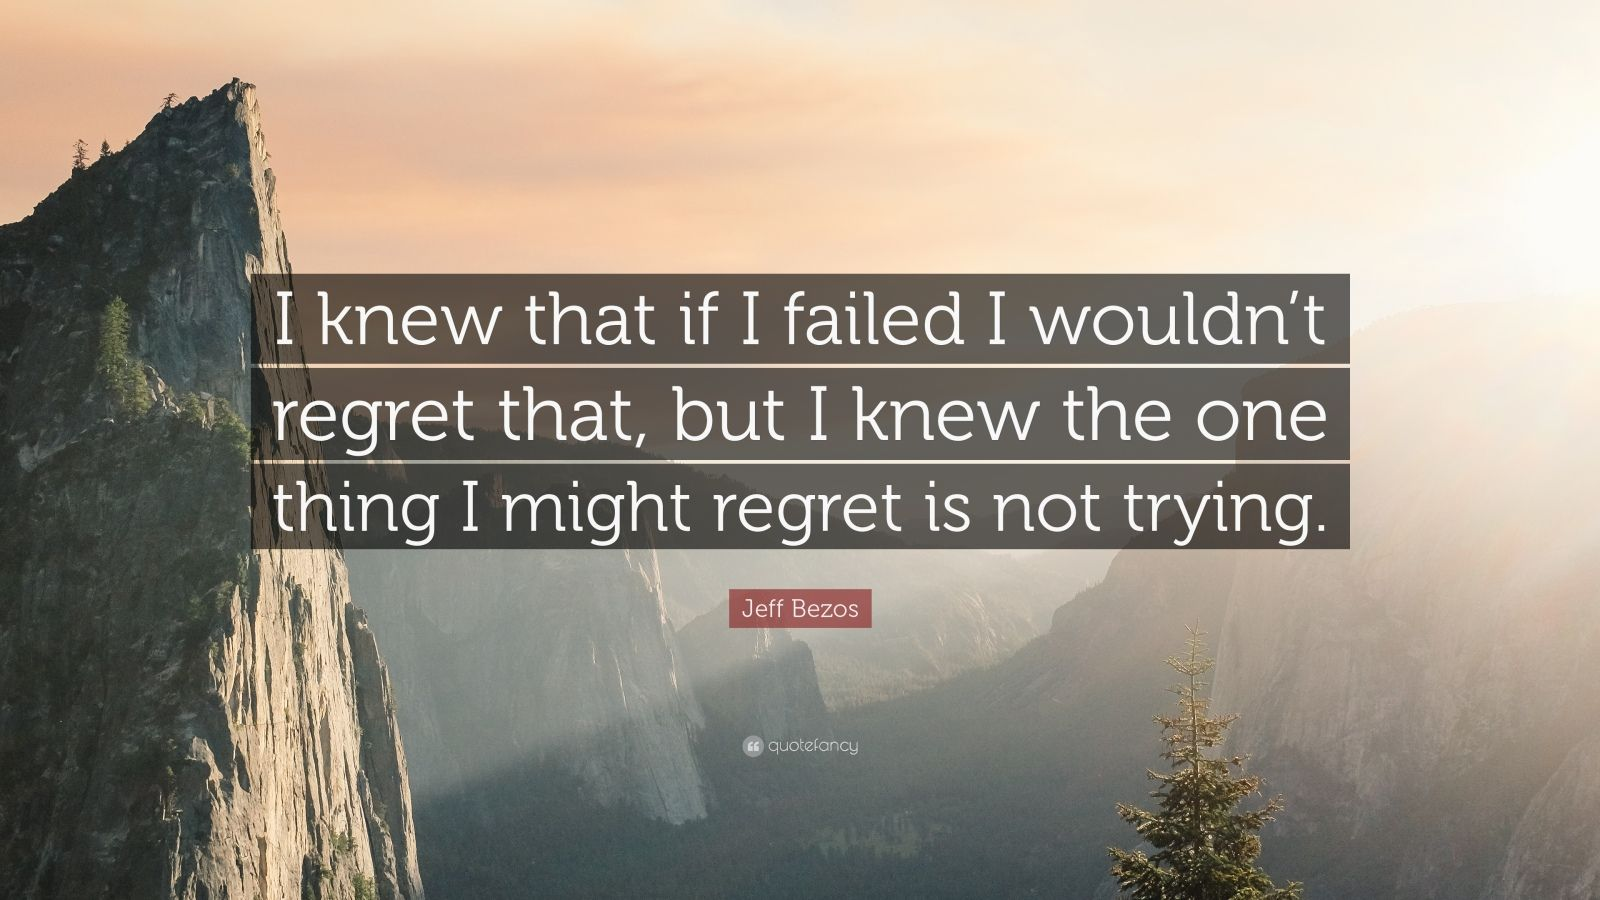 Fancy Quote Wallpaper Jeff Bezos Quote I Knew That If I Failed I Wouldn T